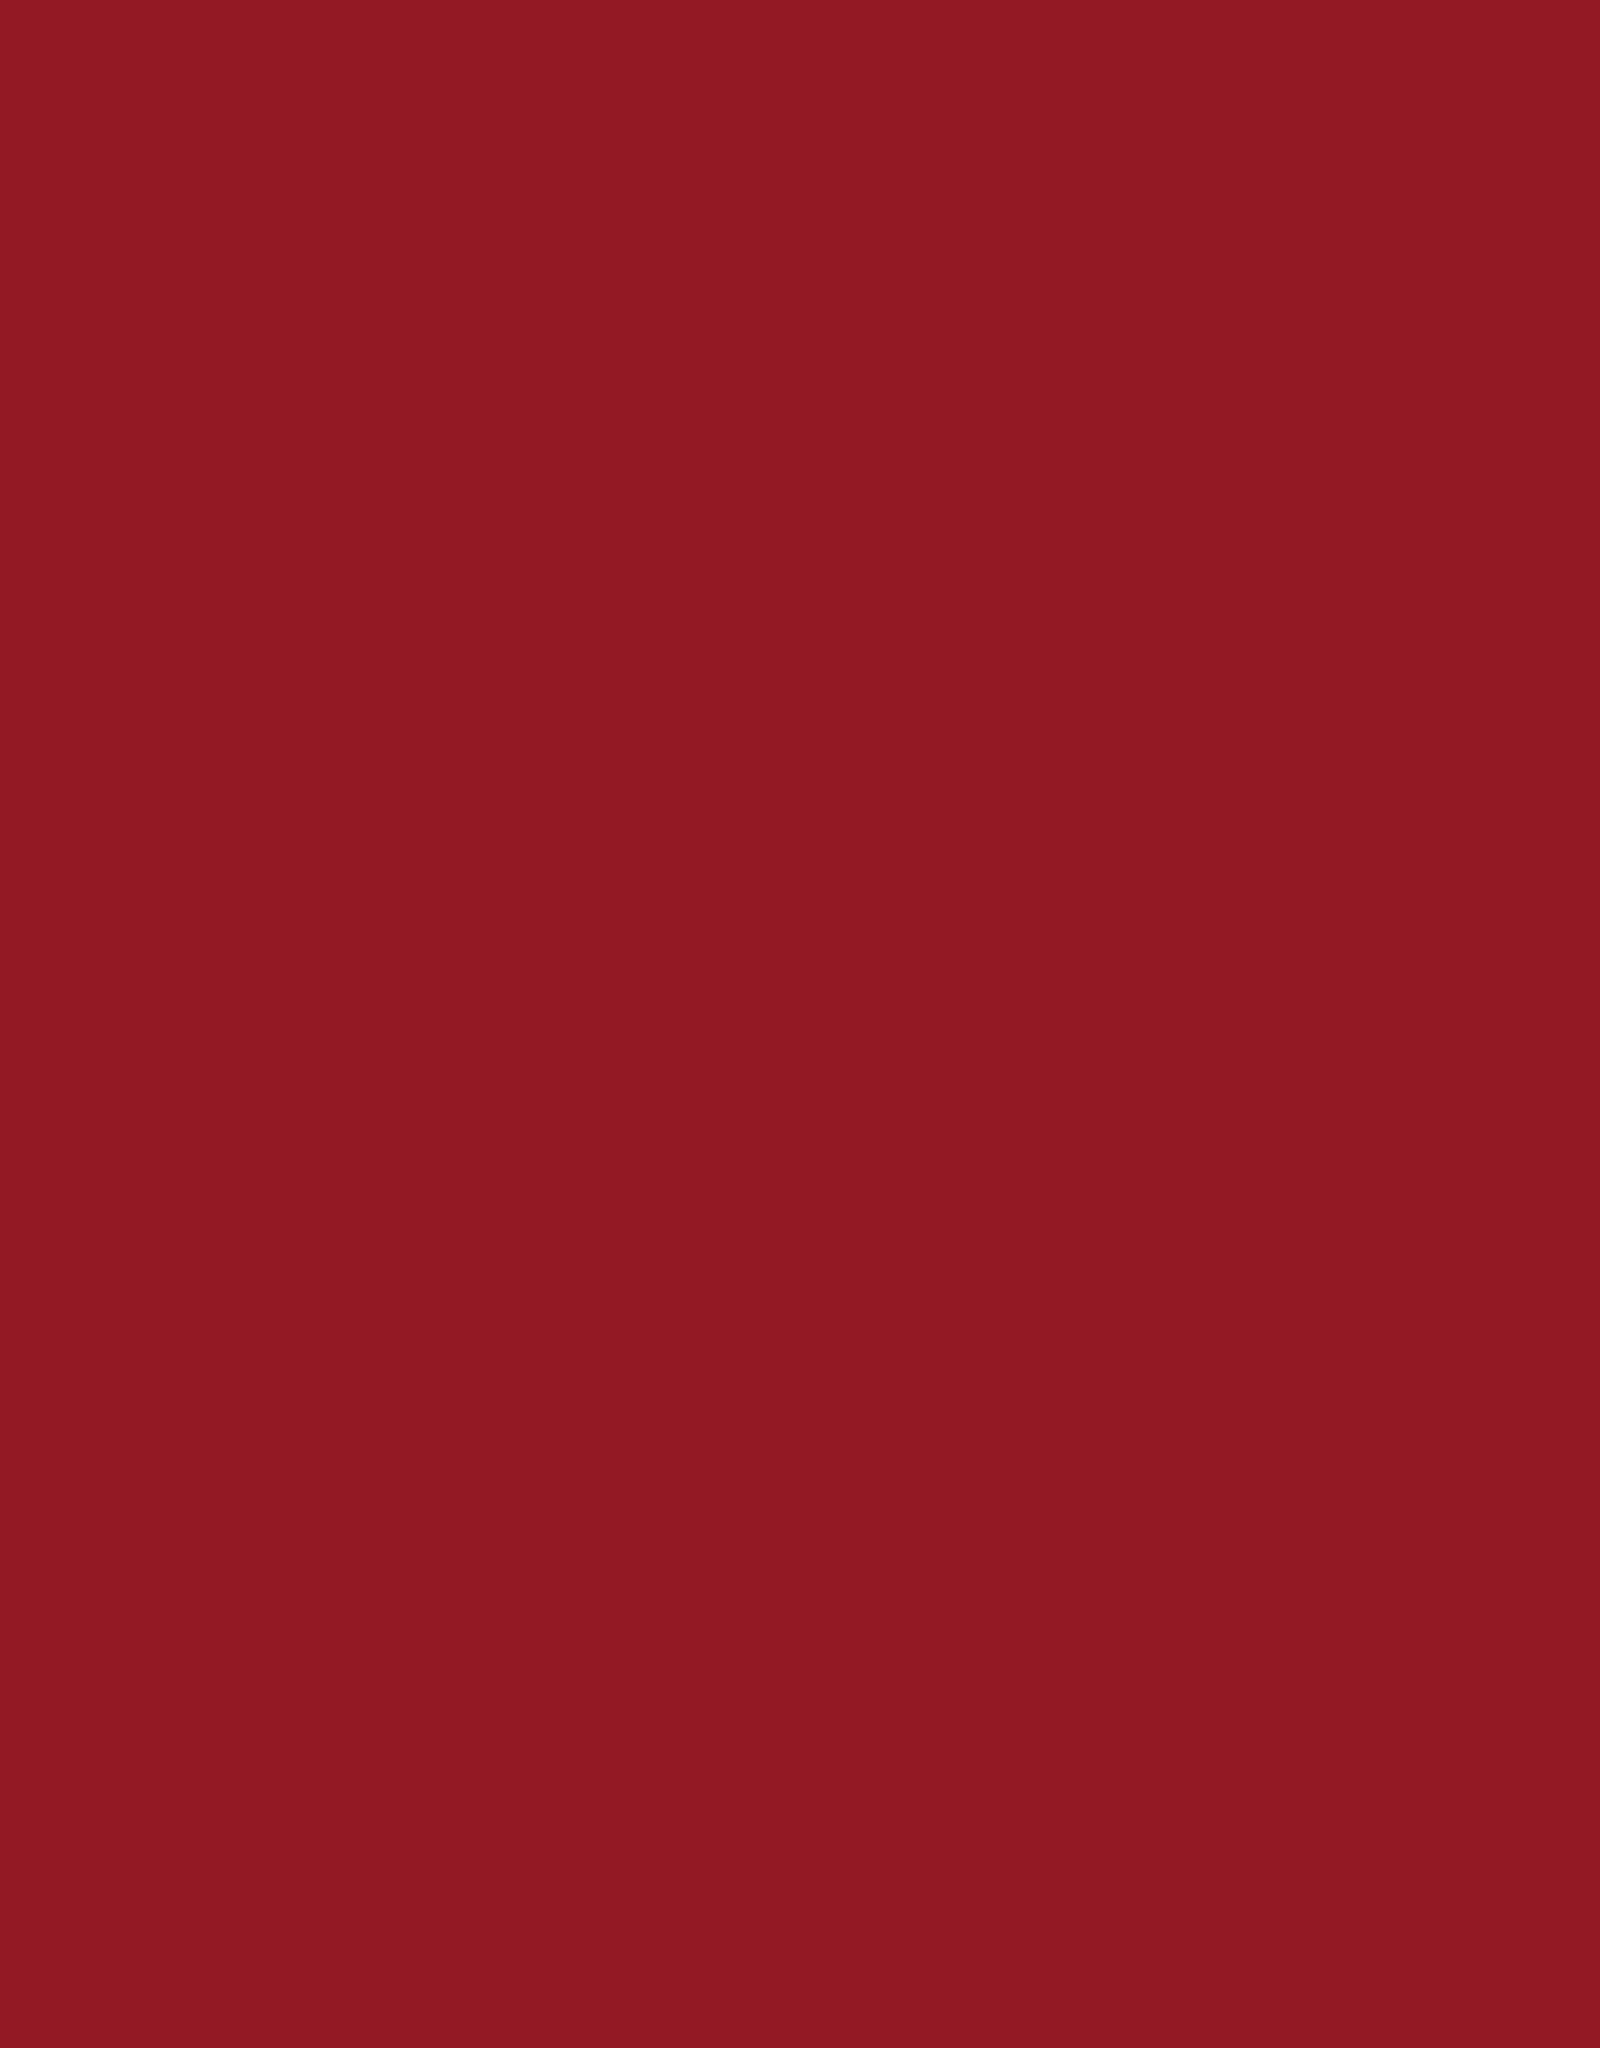 Trapsuutjies Textile Paint Wine Red Large